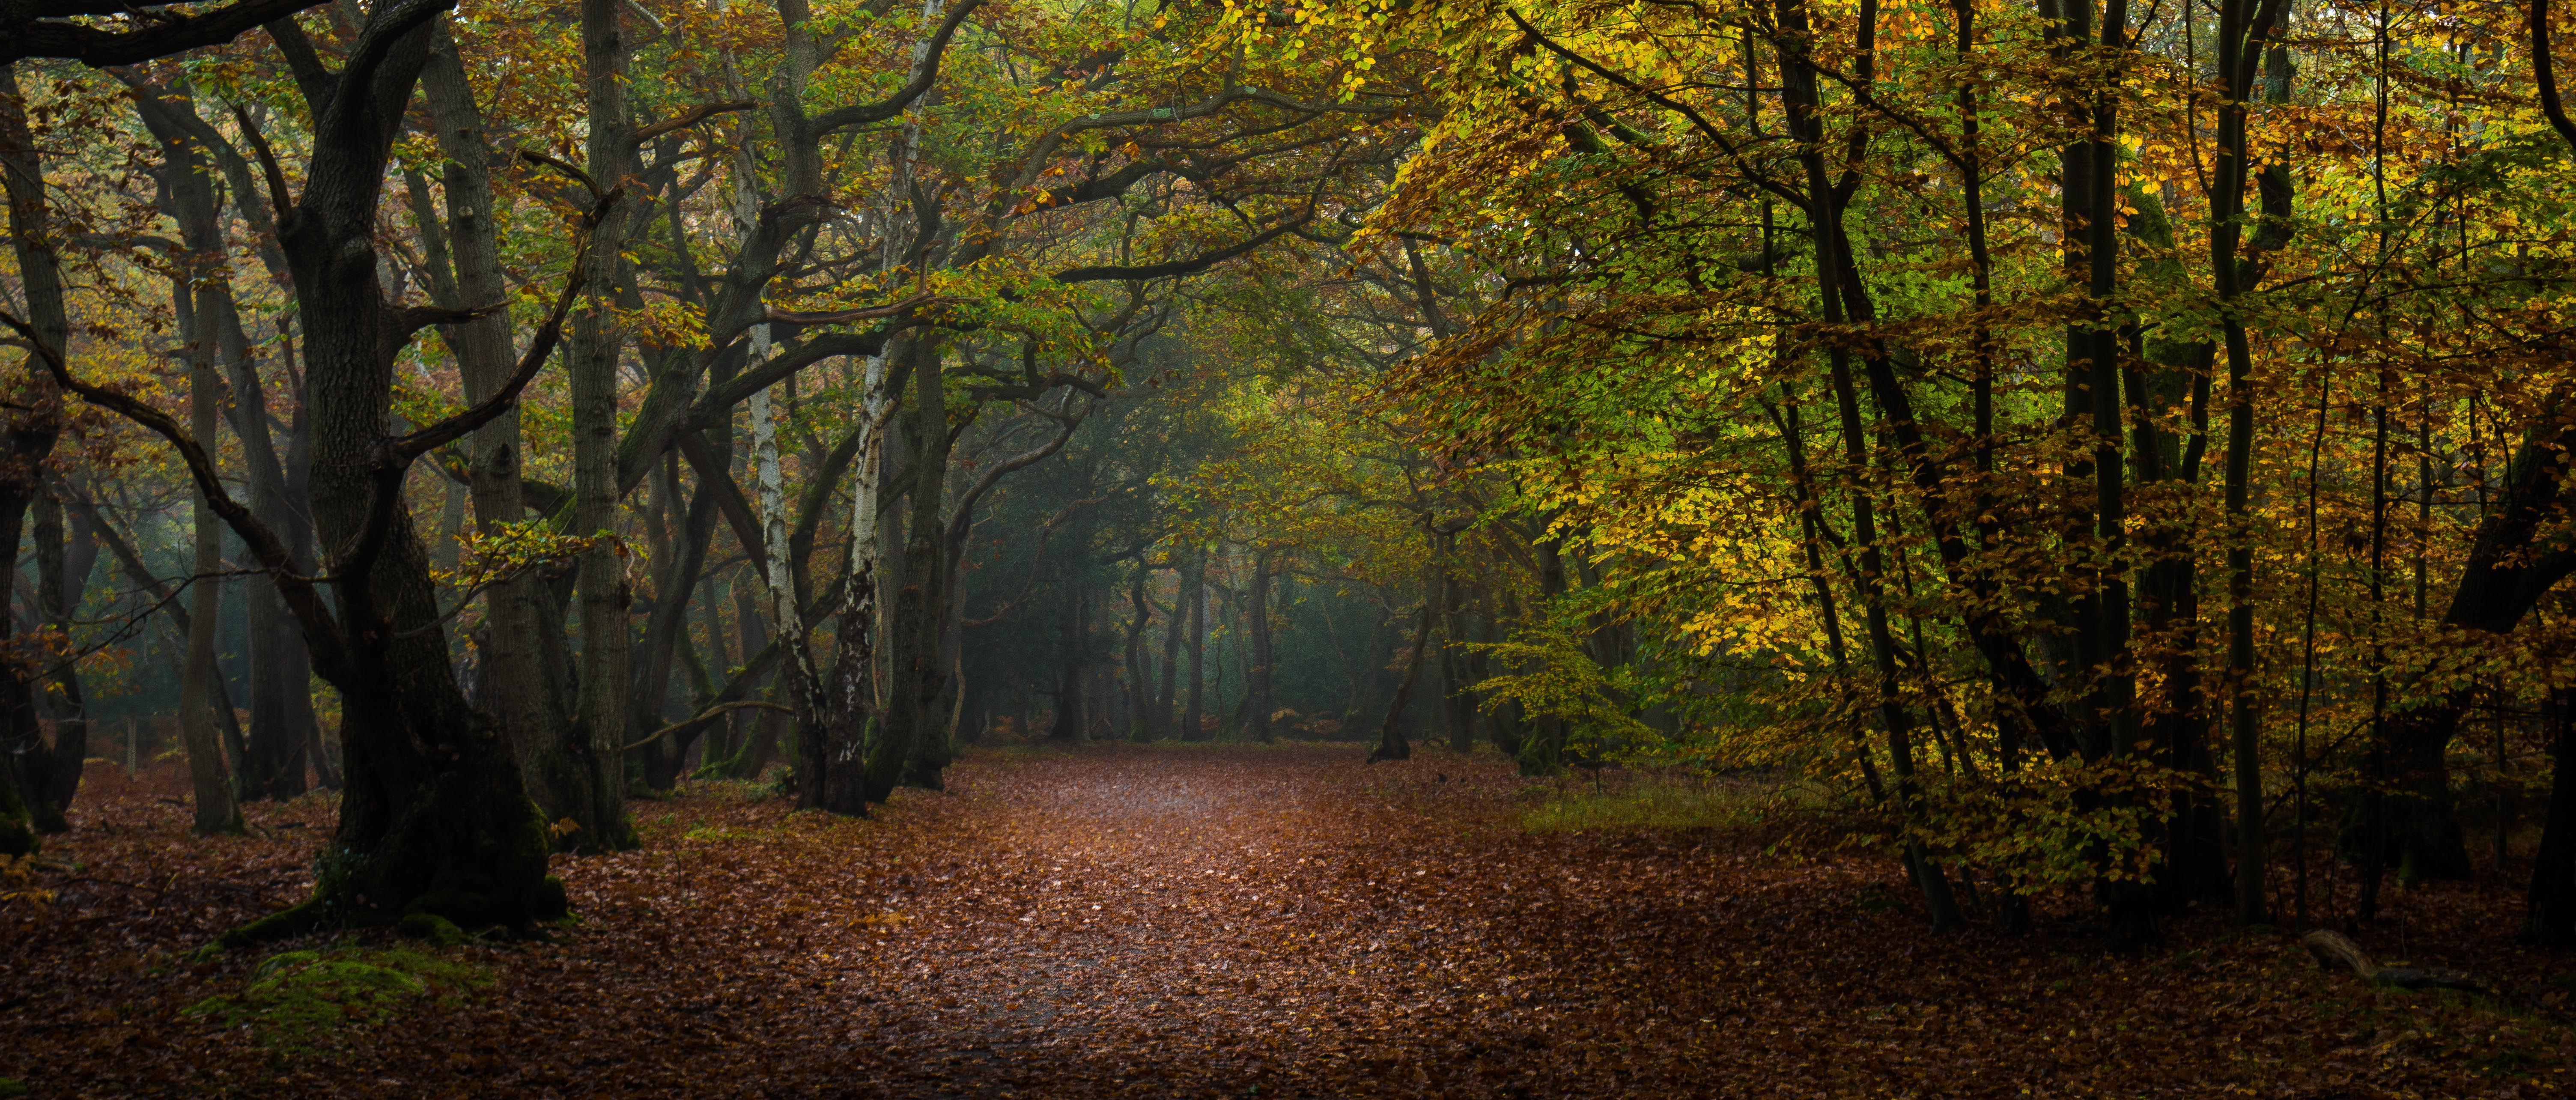 Burnham Beeches, UK